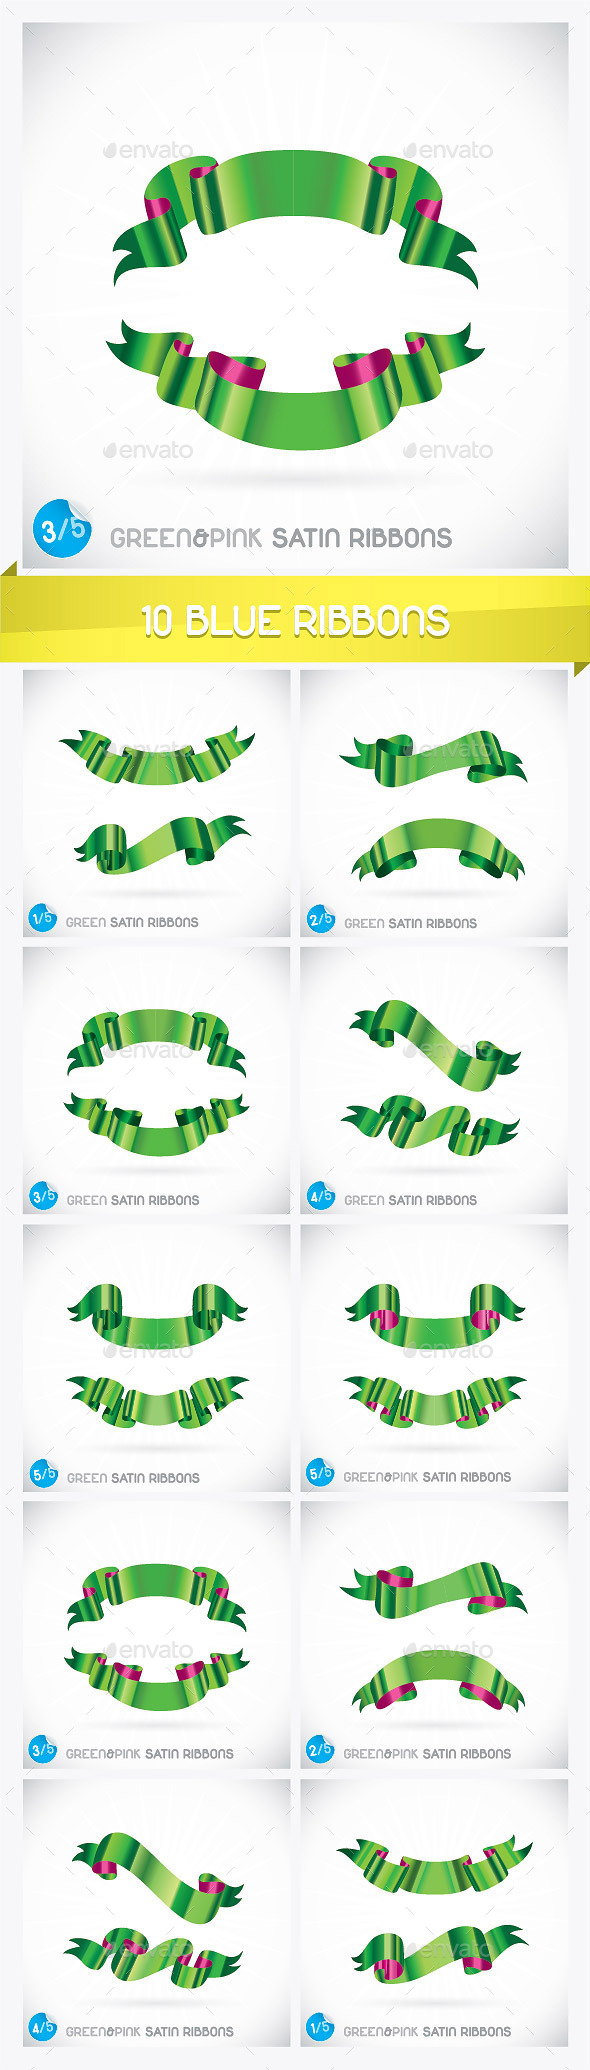 GraphicRiver 10 Green Ribbons 8892002